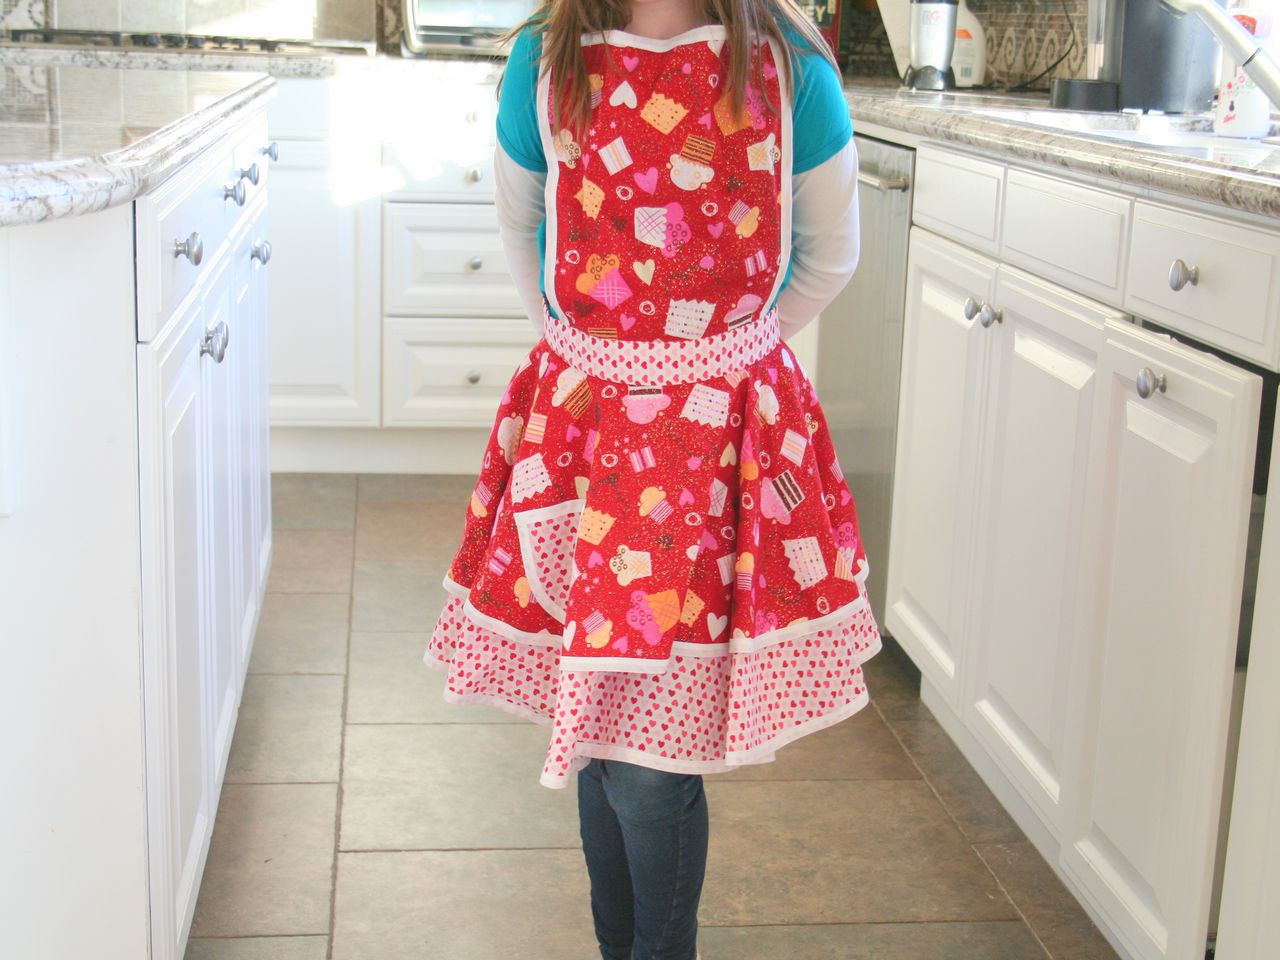 Enter to win a Cupcake Apron and $50 #LOVEHOP